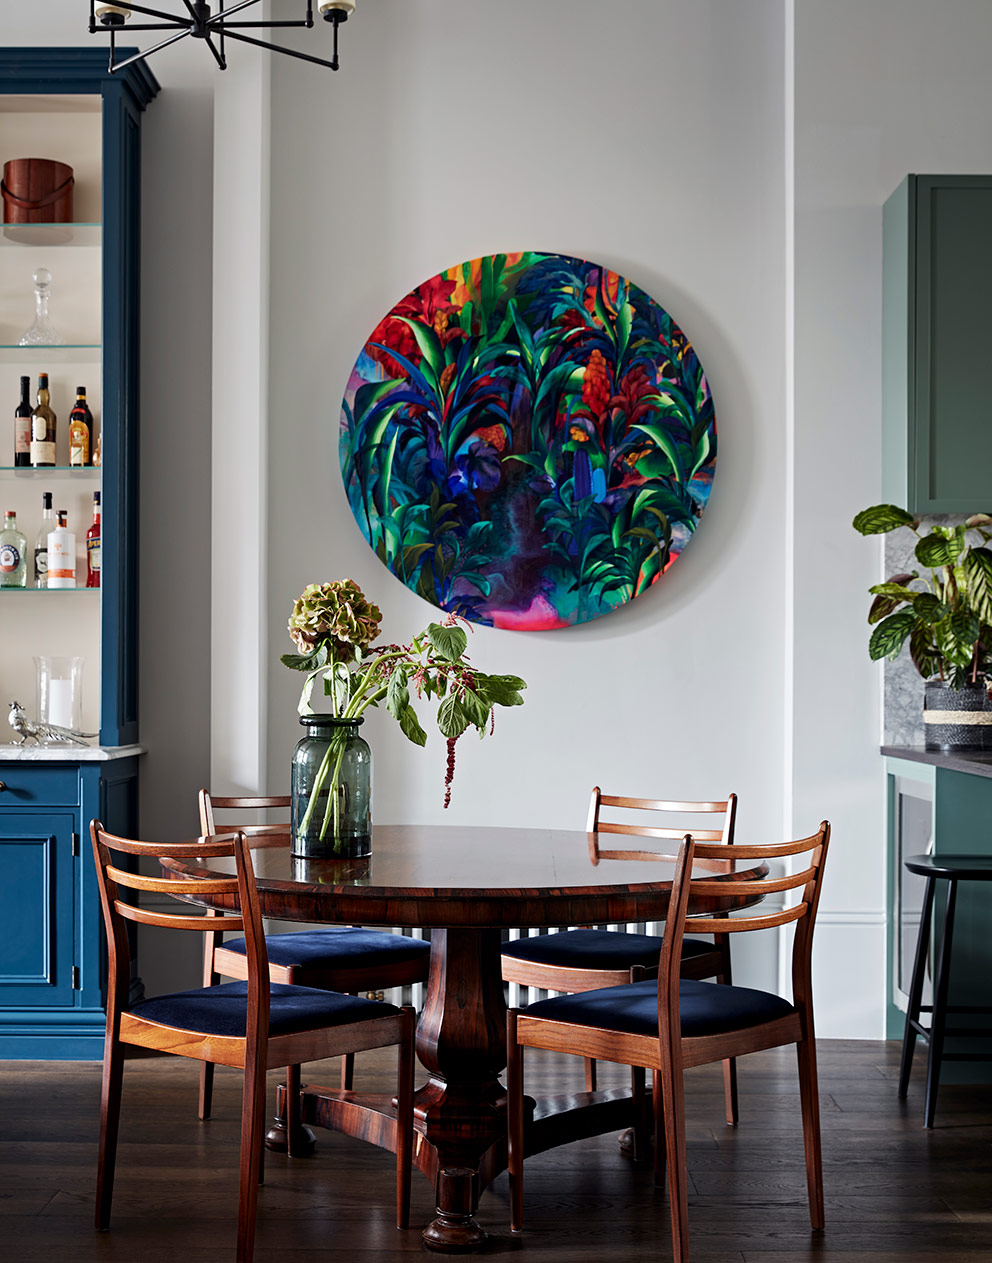 Vintage dining table and chairs with bright circular painting on the wall behind